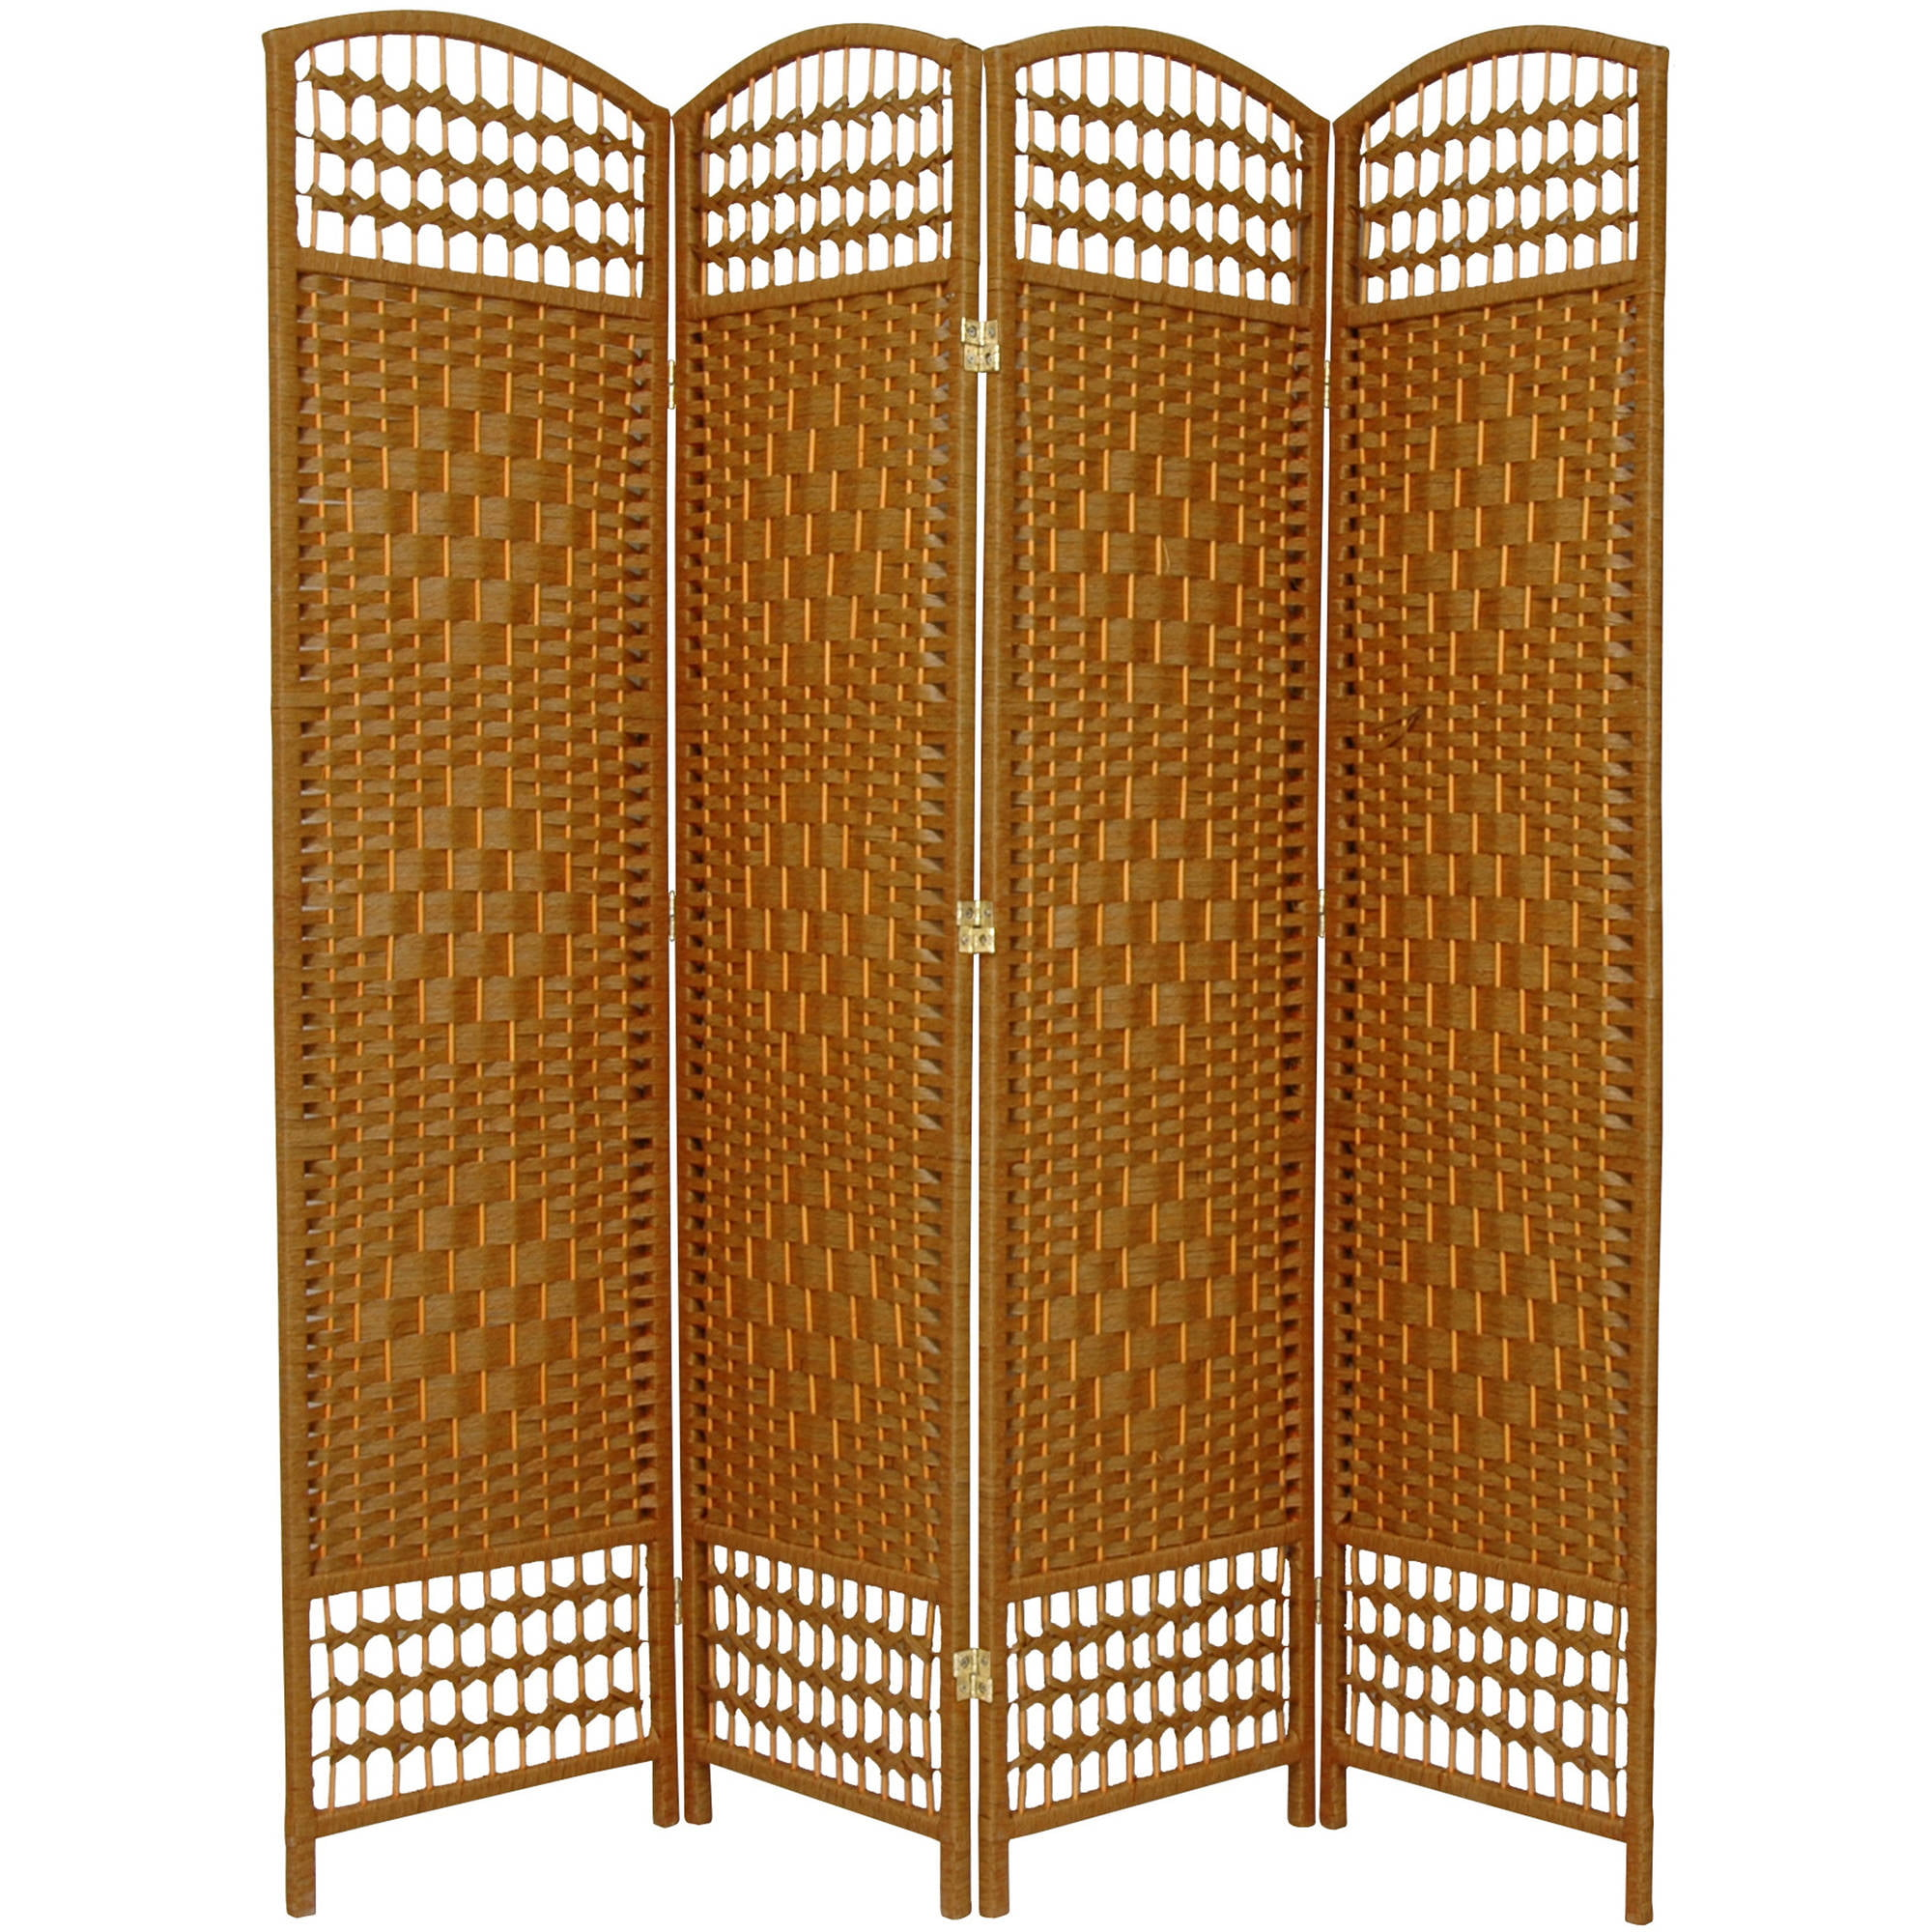 Superb Room Dividers.com Part - 7: $75-$100